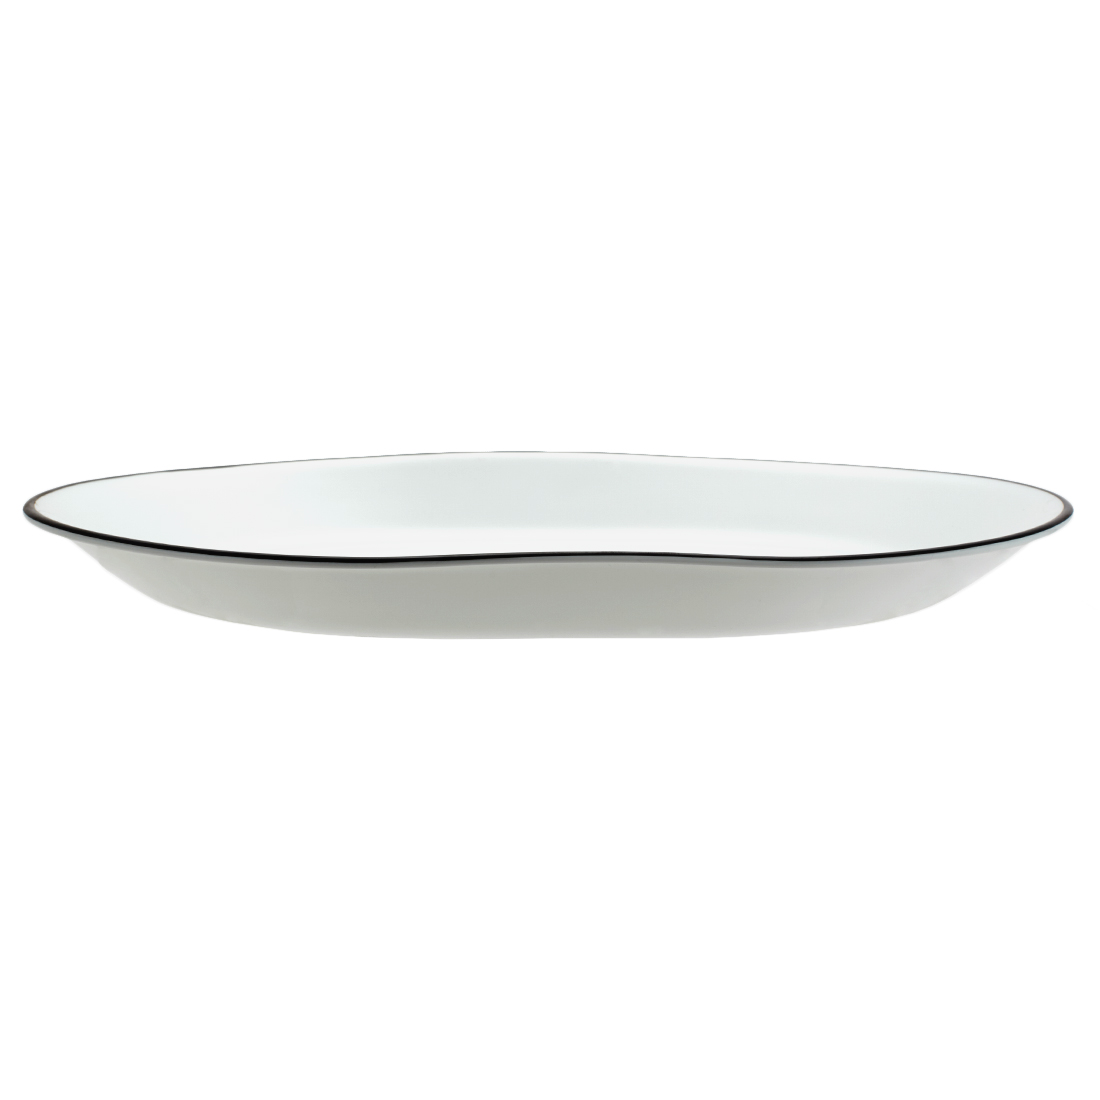 Corelle City Block Serving Platter Vitrelle Platters in White & Black Colour by Corelle